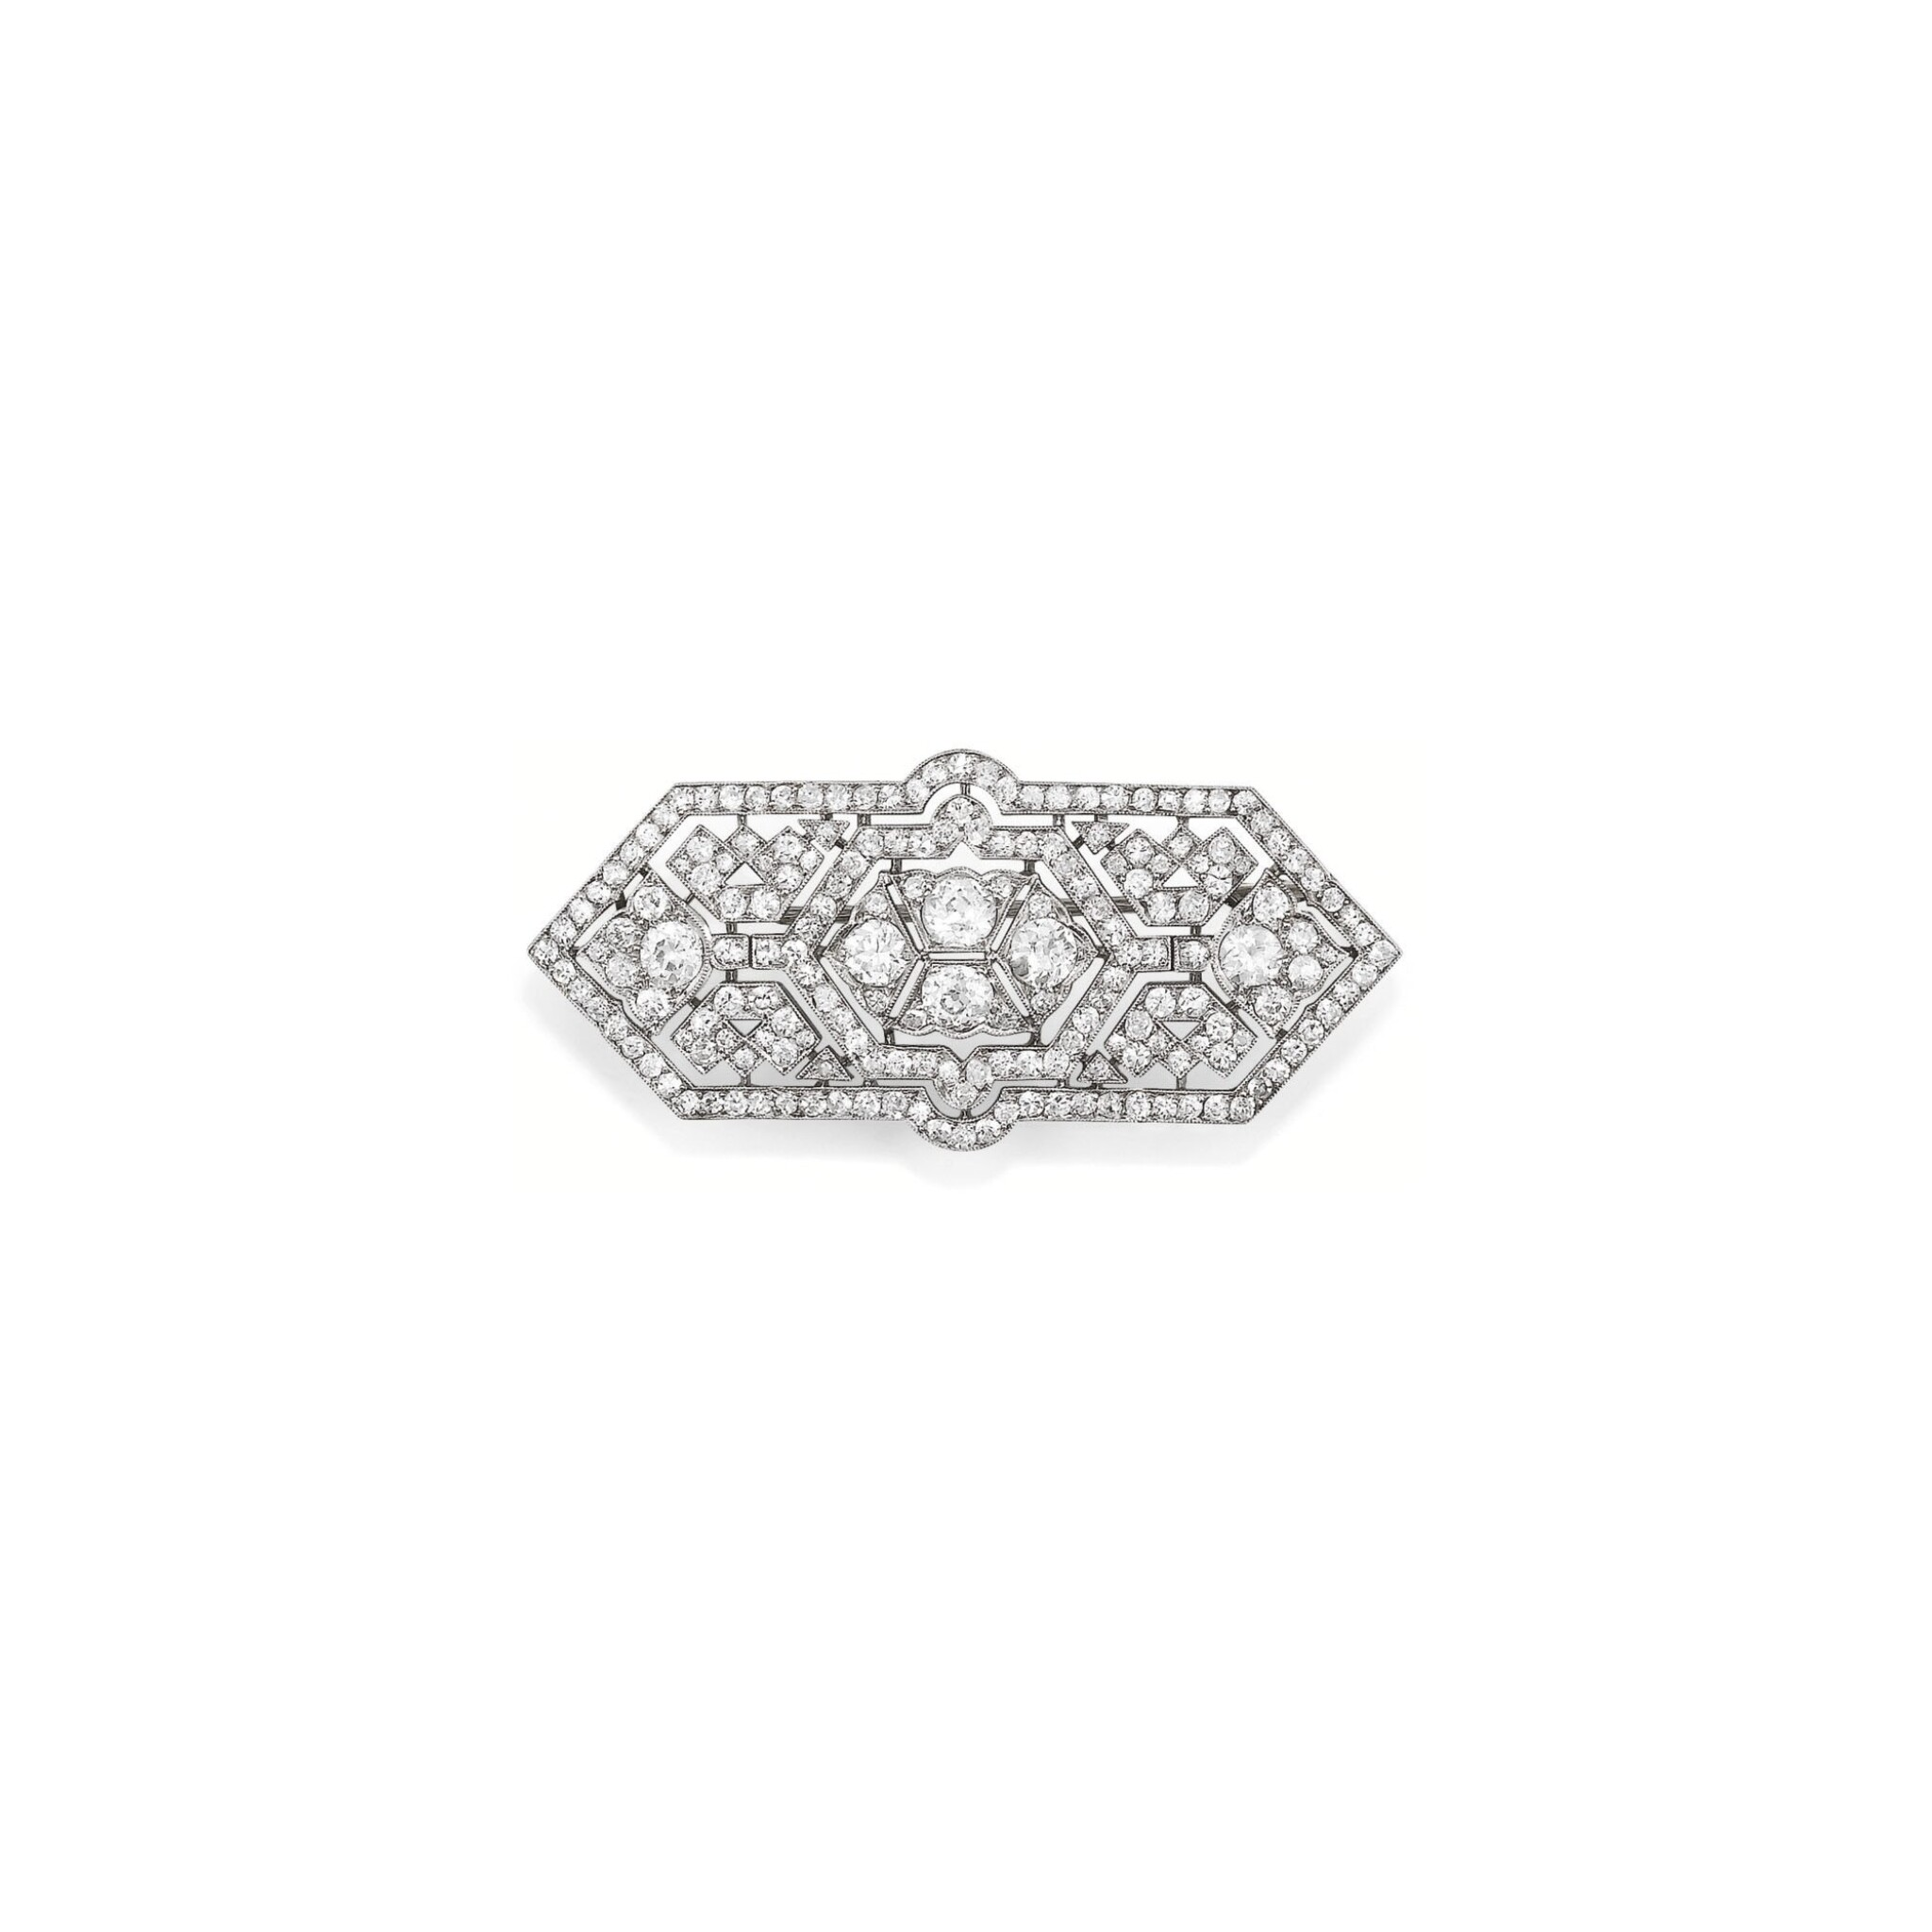 View full screen - View 1 of Lot 234. BROCHE DIAMANTS, VERS 1930 | DIAMOND BROOCH, 1930S.